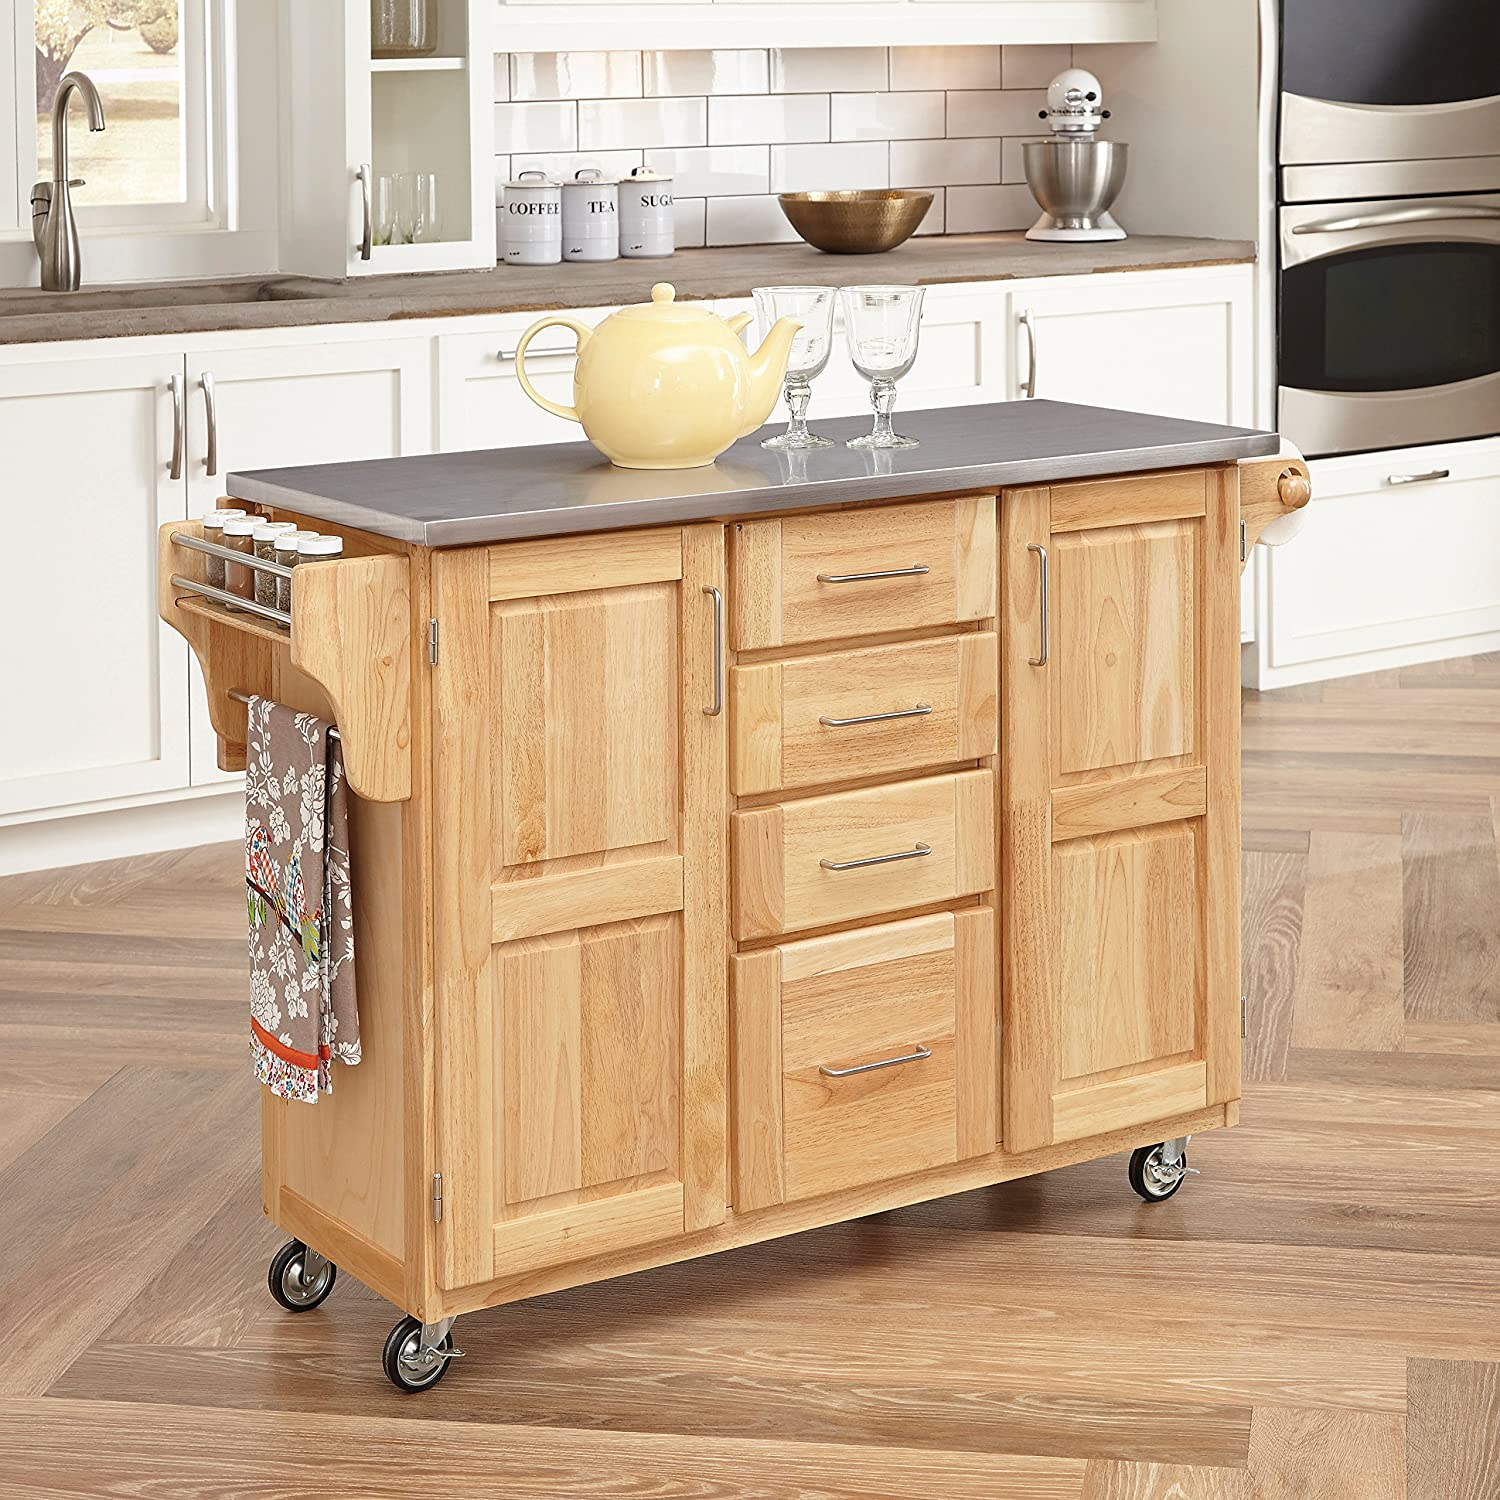 amazon com   home styles 5086 95 stainless steel top kitchen cart with breakfast bar natural finish   bar  u0026 serving carts amazon com   home styles 5086 95 stainless steel top kitchen cart      rh   amazon com